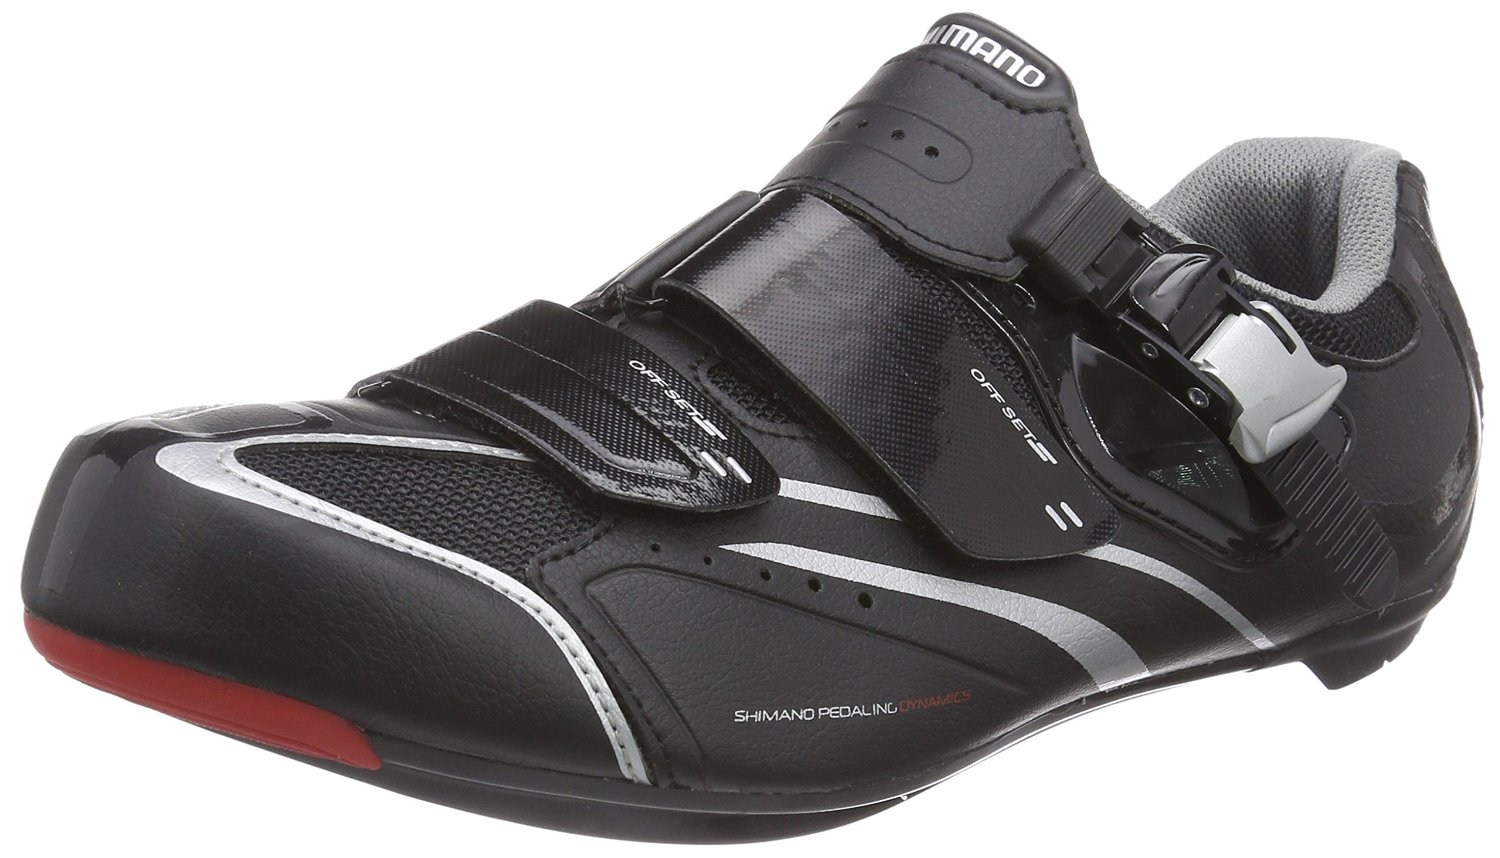 Shimano SH-R088 Road Bike Shoes